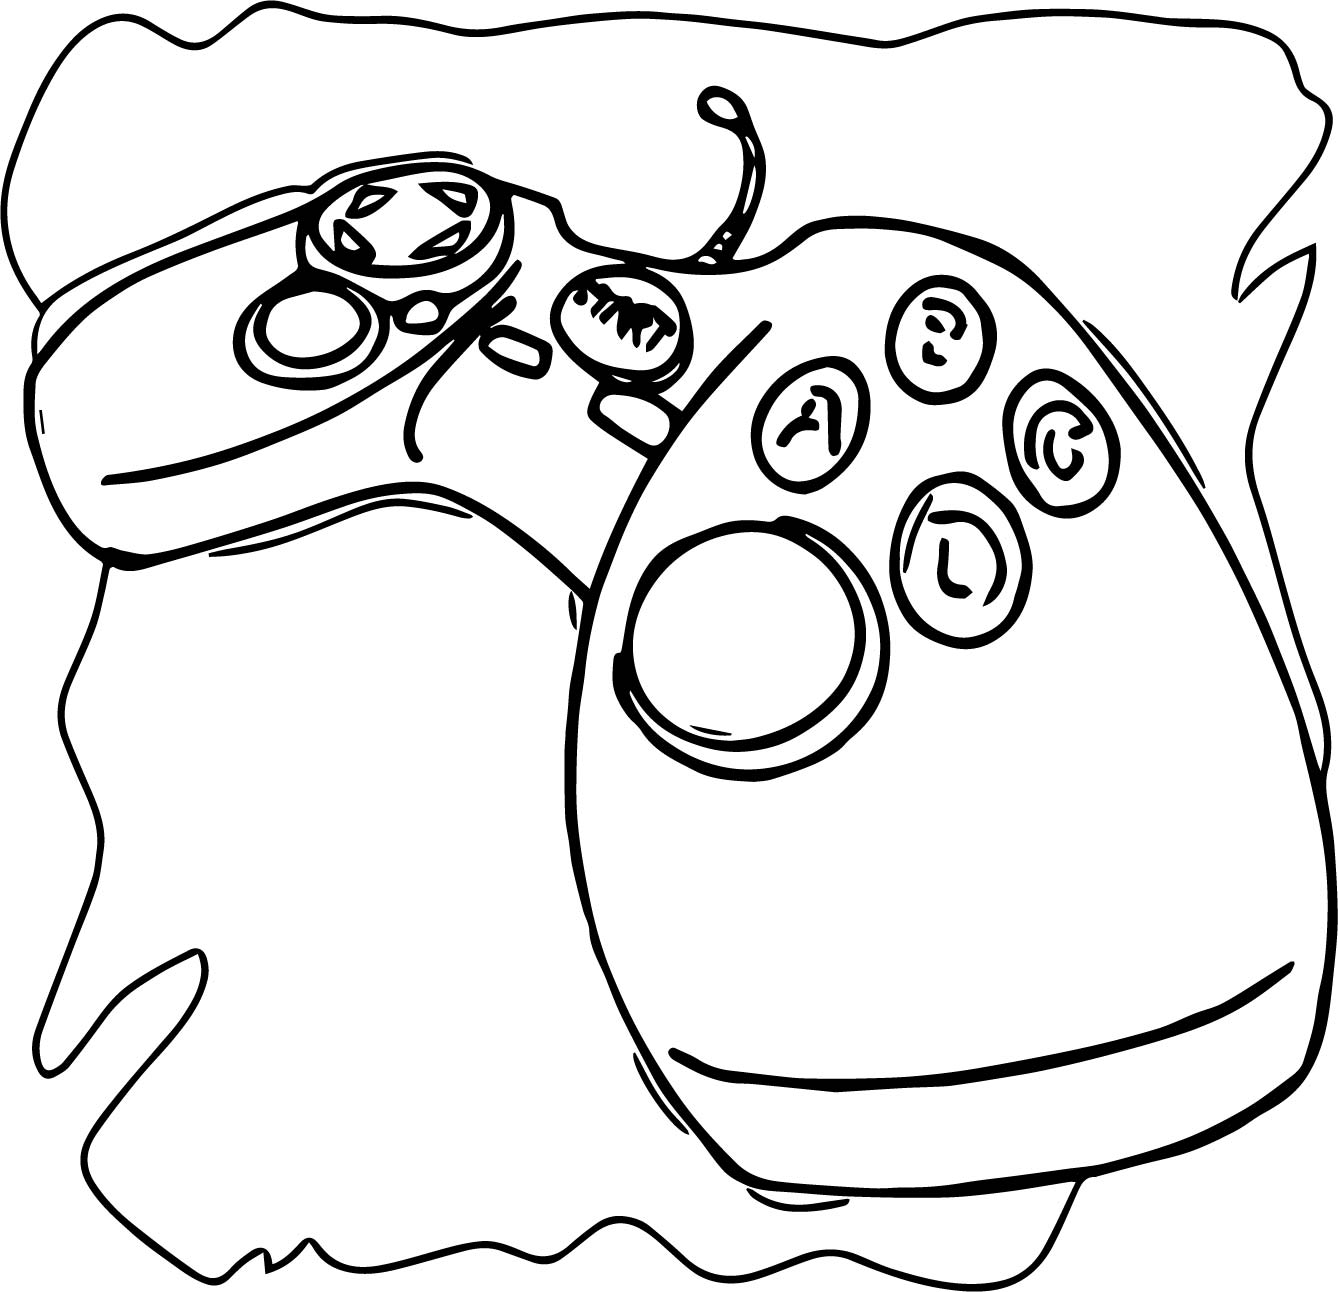 Playing Computer Games Big Joystick Coloring Page